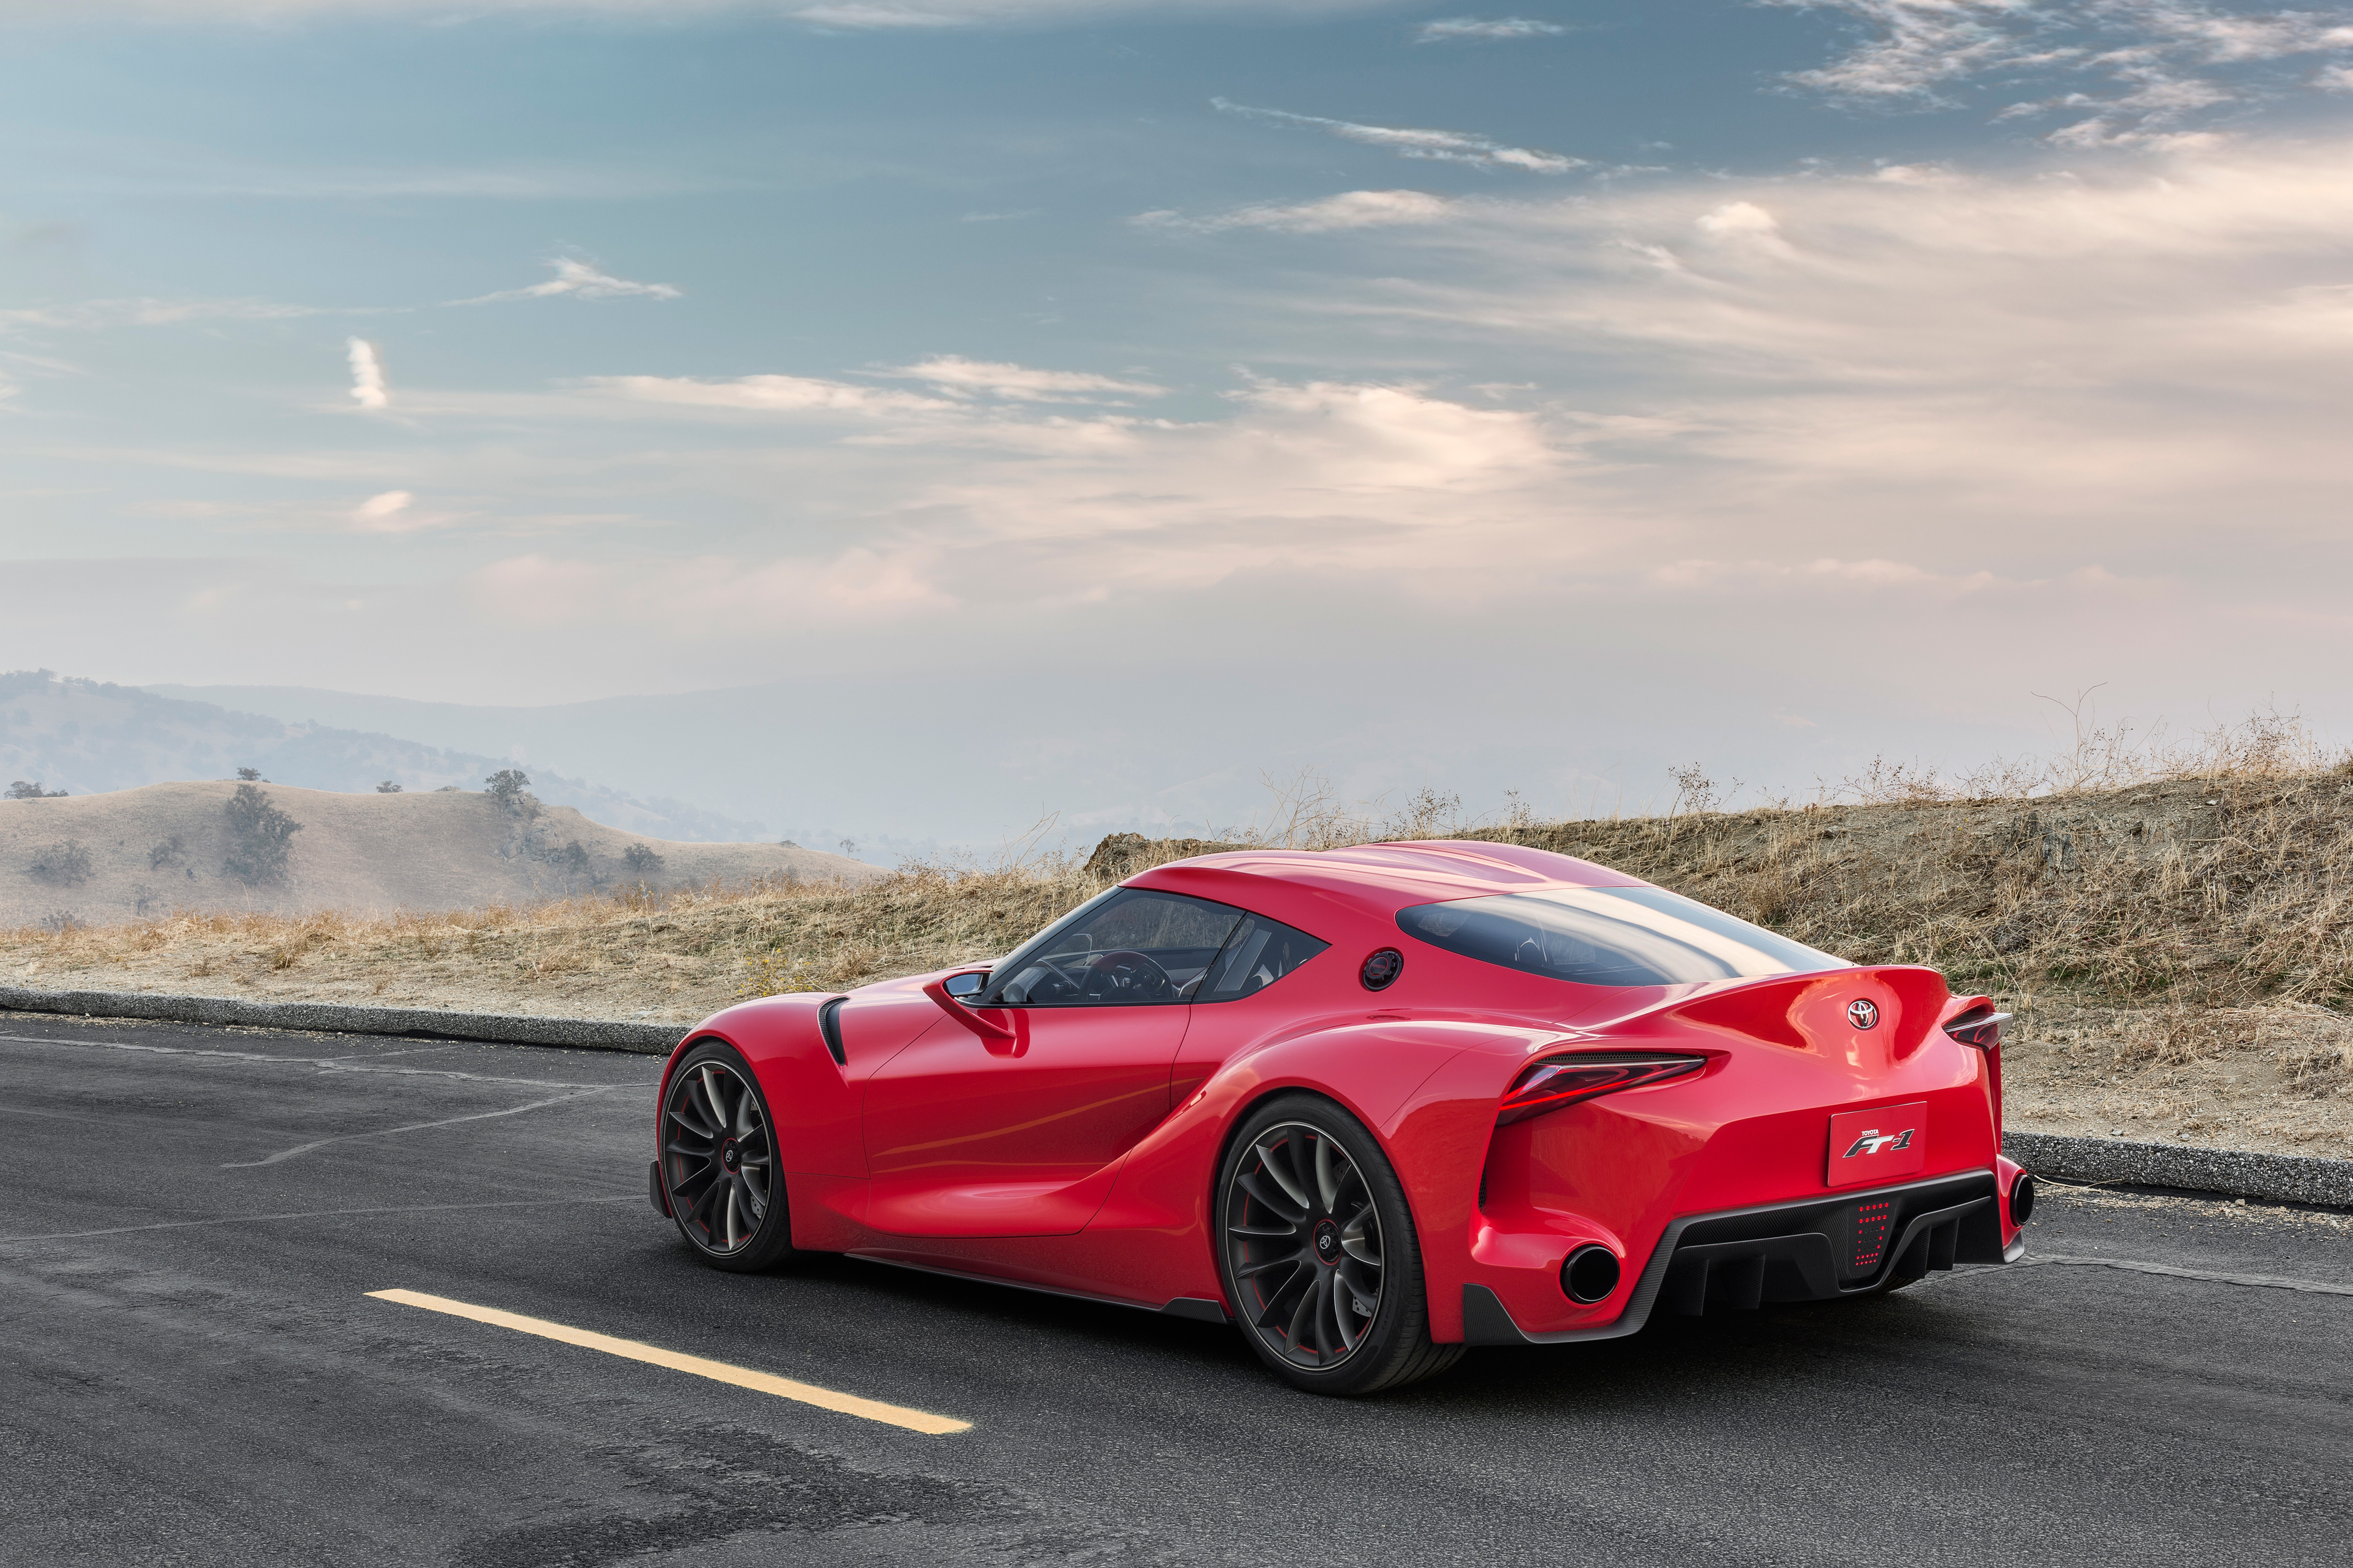 62673 download wallpaper Toyota, Cars, Car, Machine, Ft-1, Side View screensavers and pictures for free